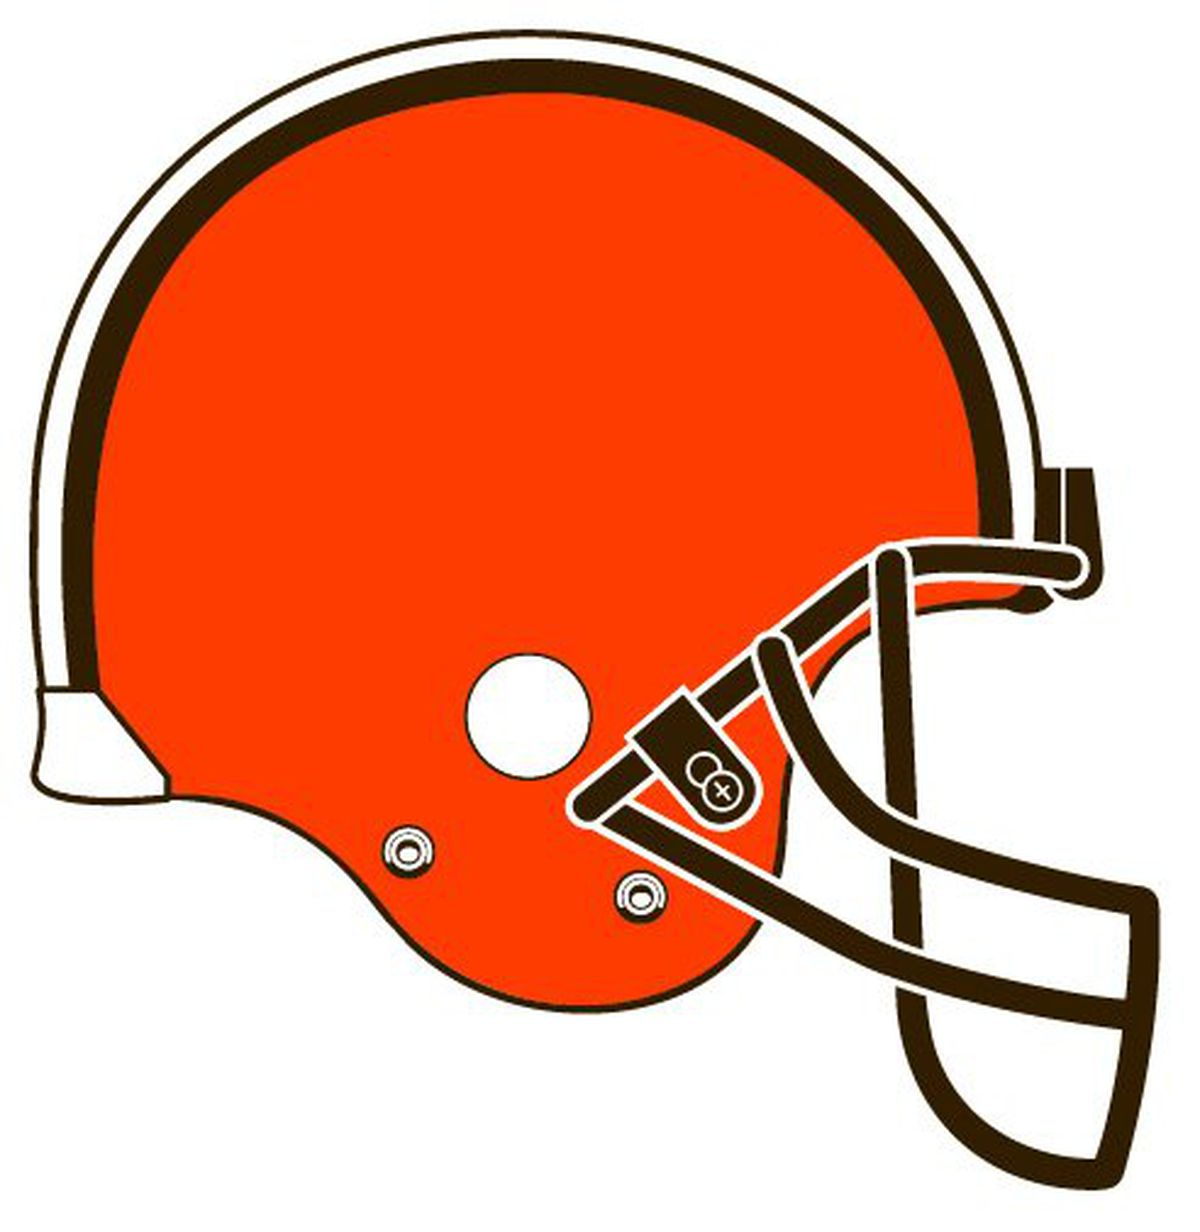 Cleveland Browns New Logos Include an Updated Helmet ...